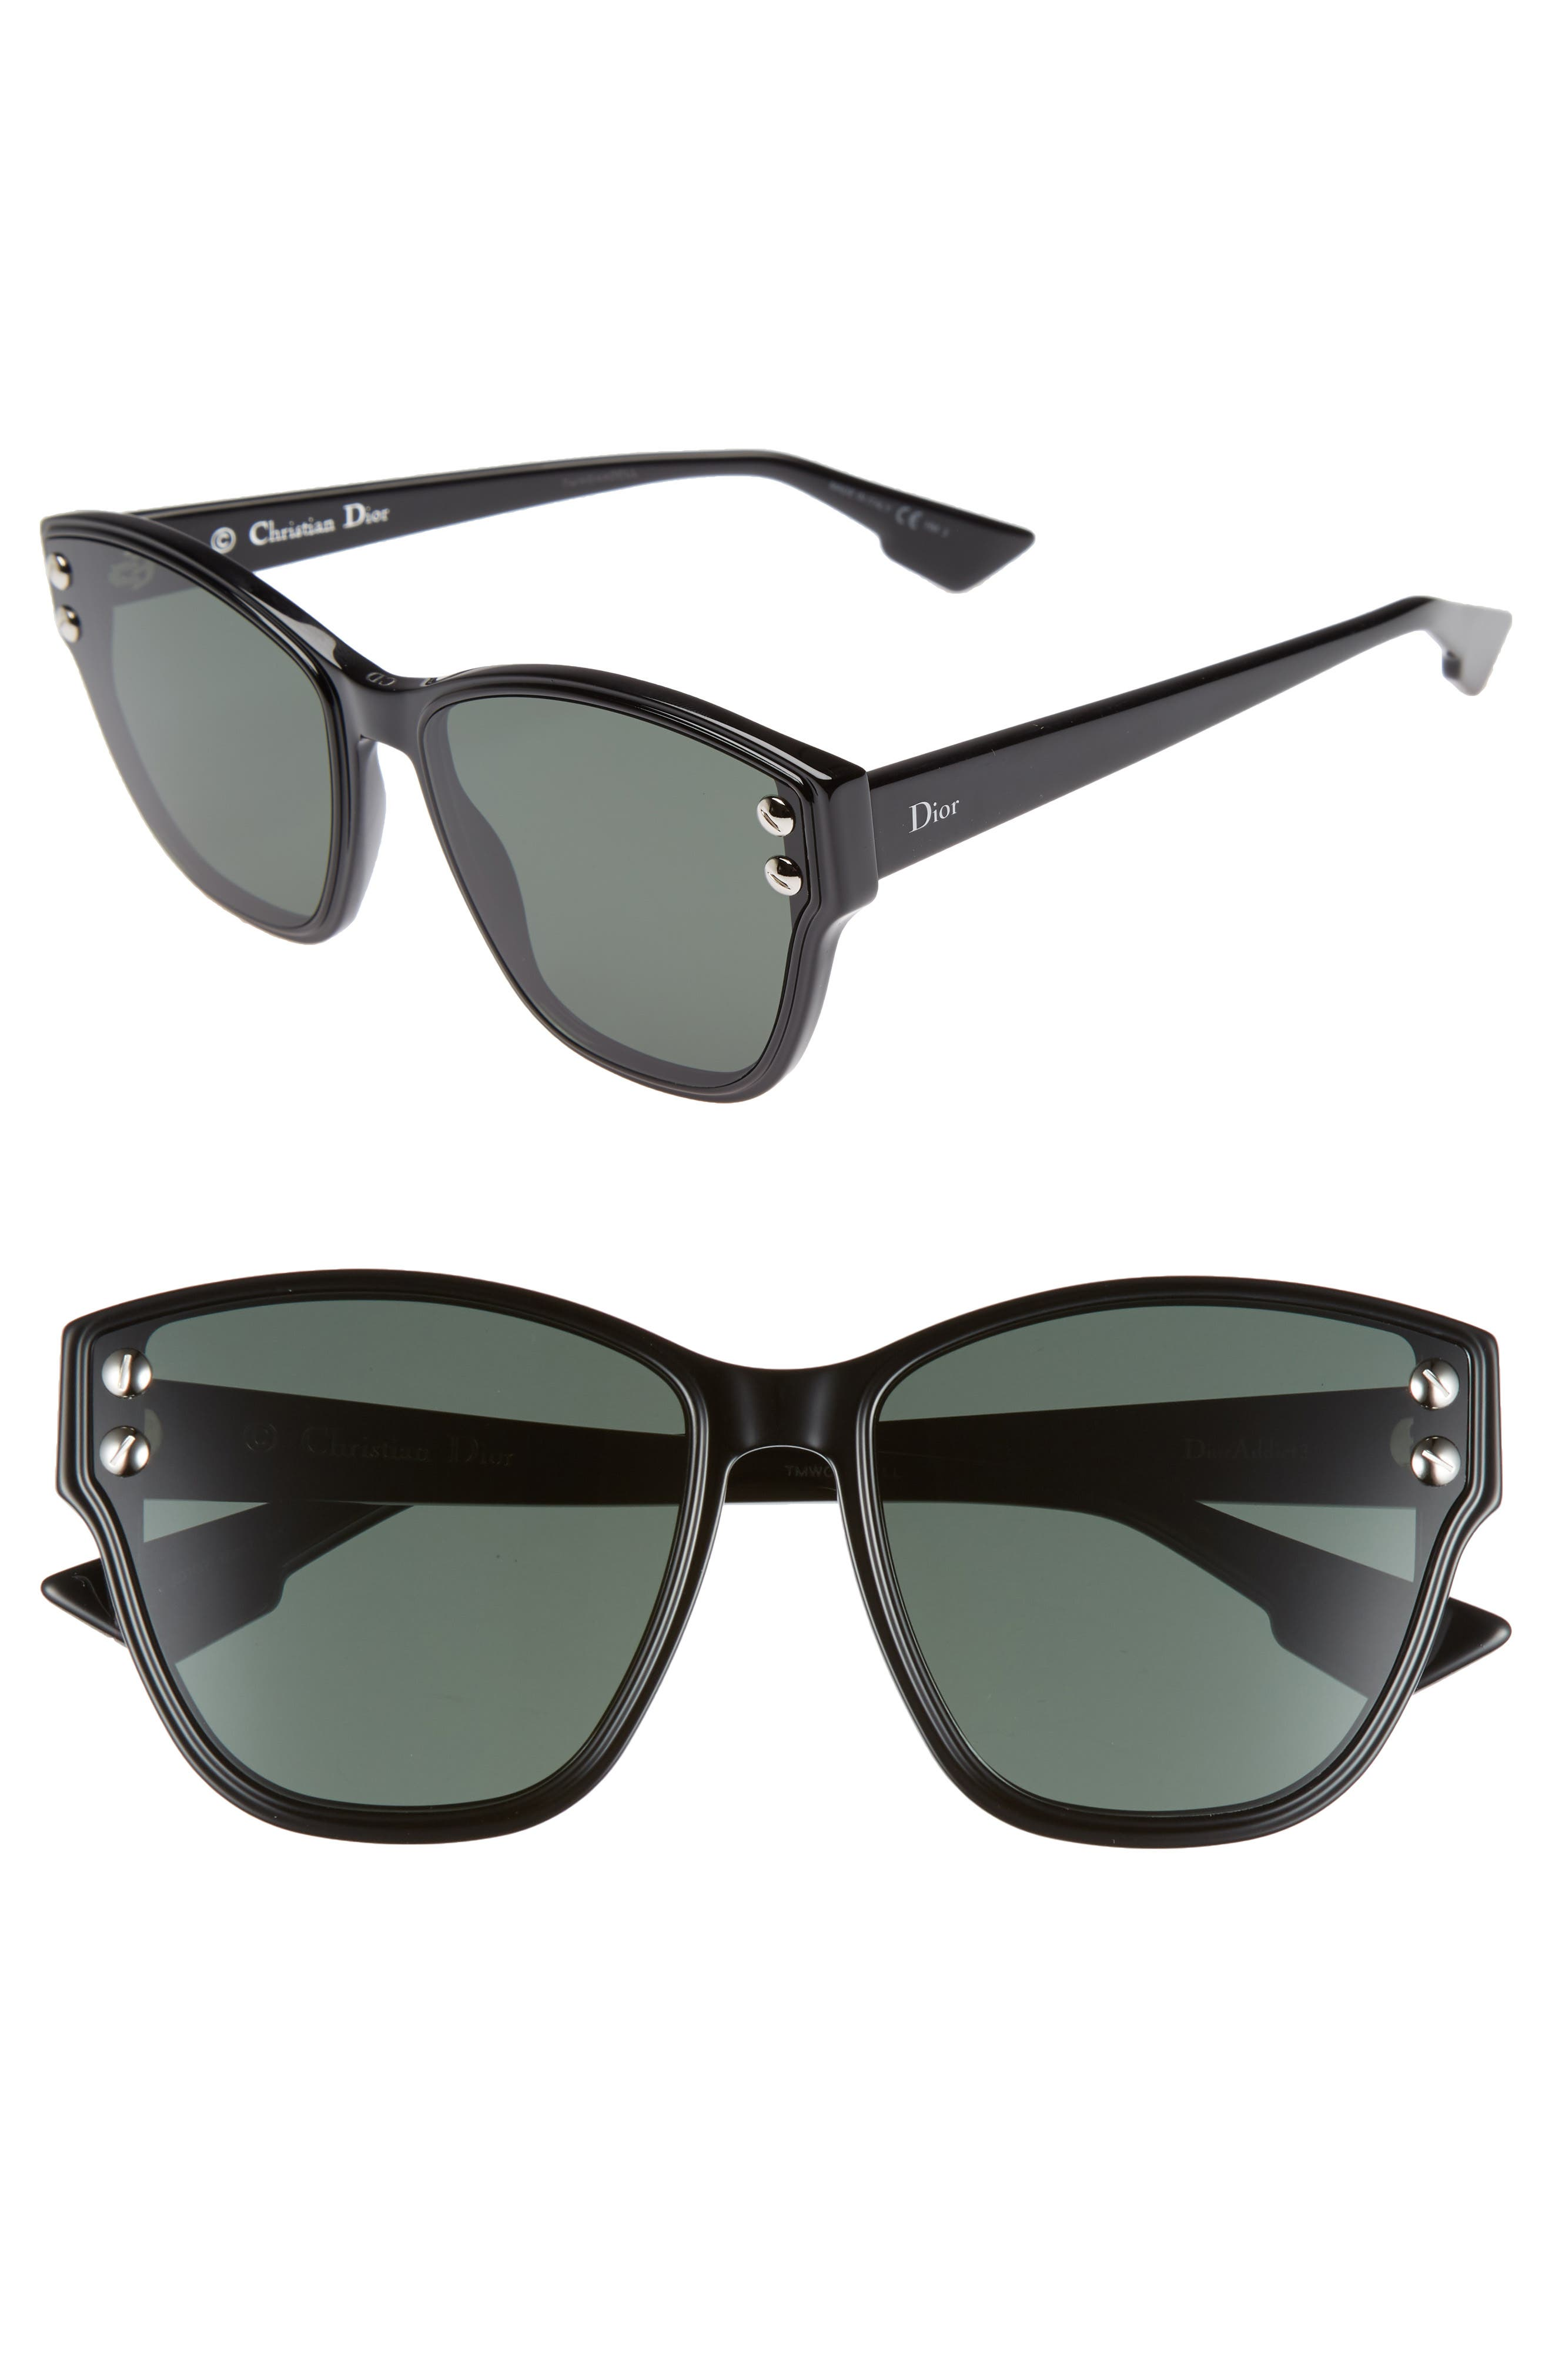 Dior 60mm Sunglasses